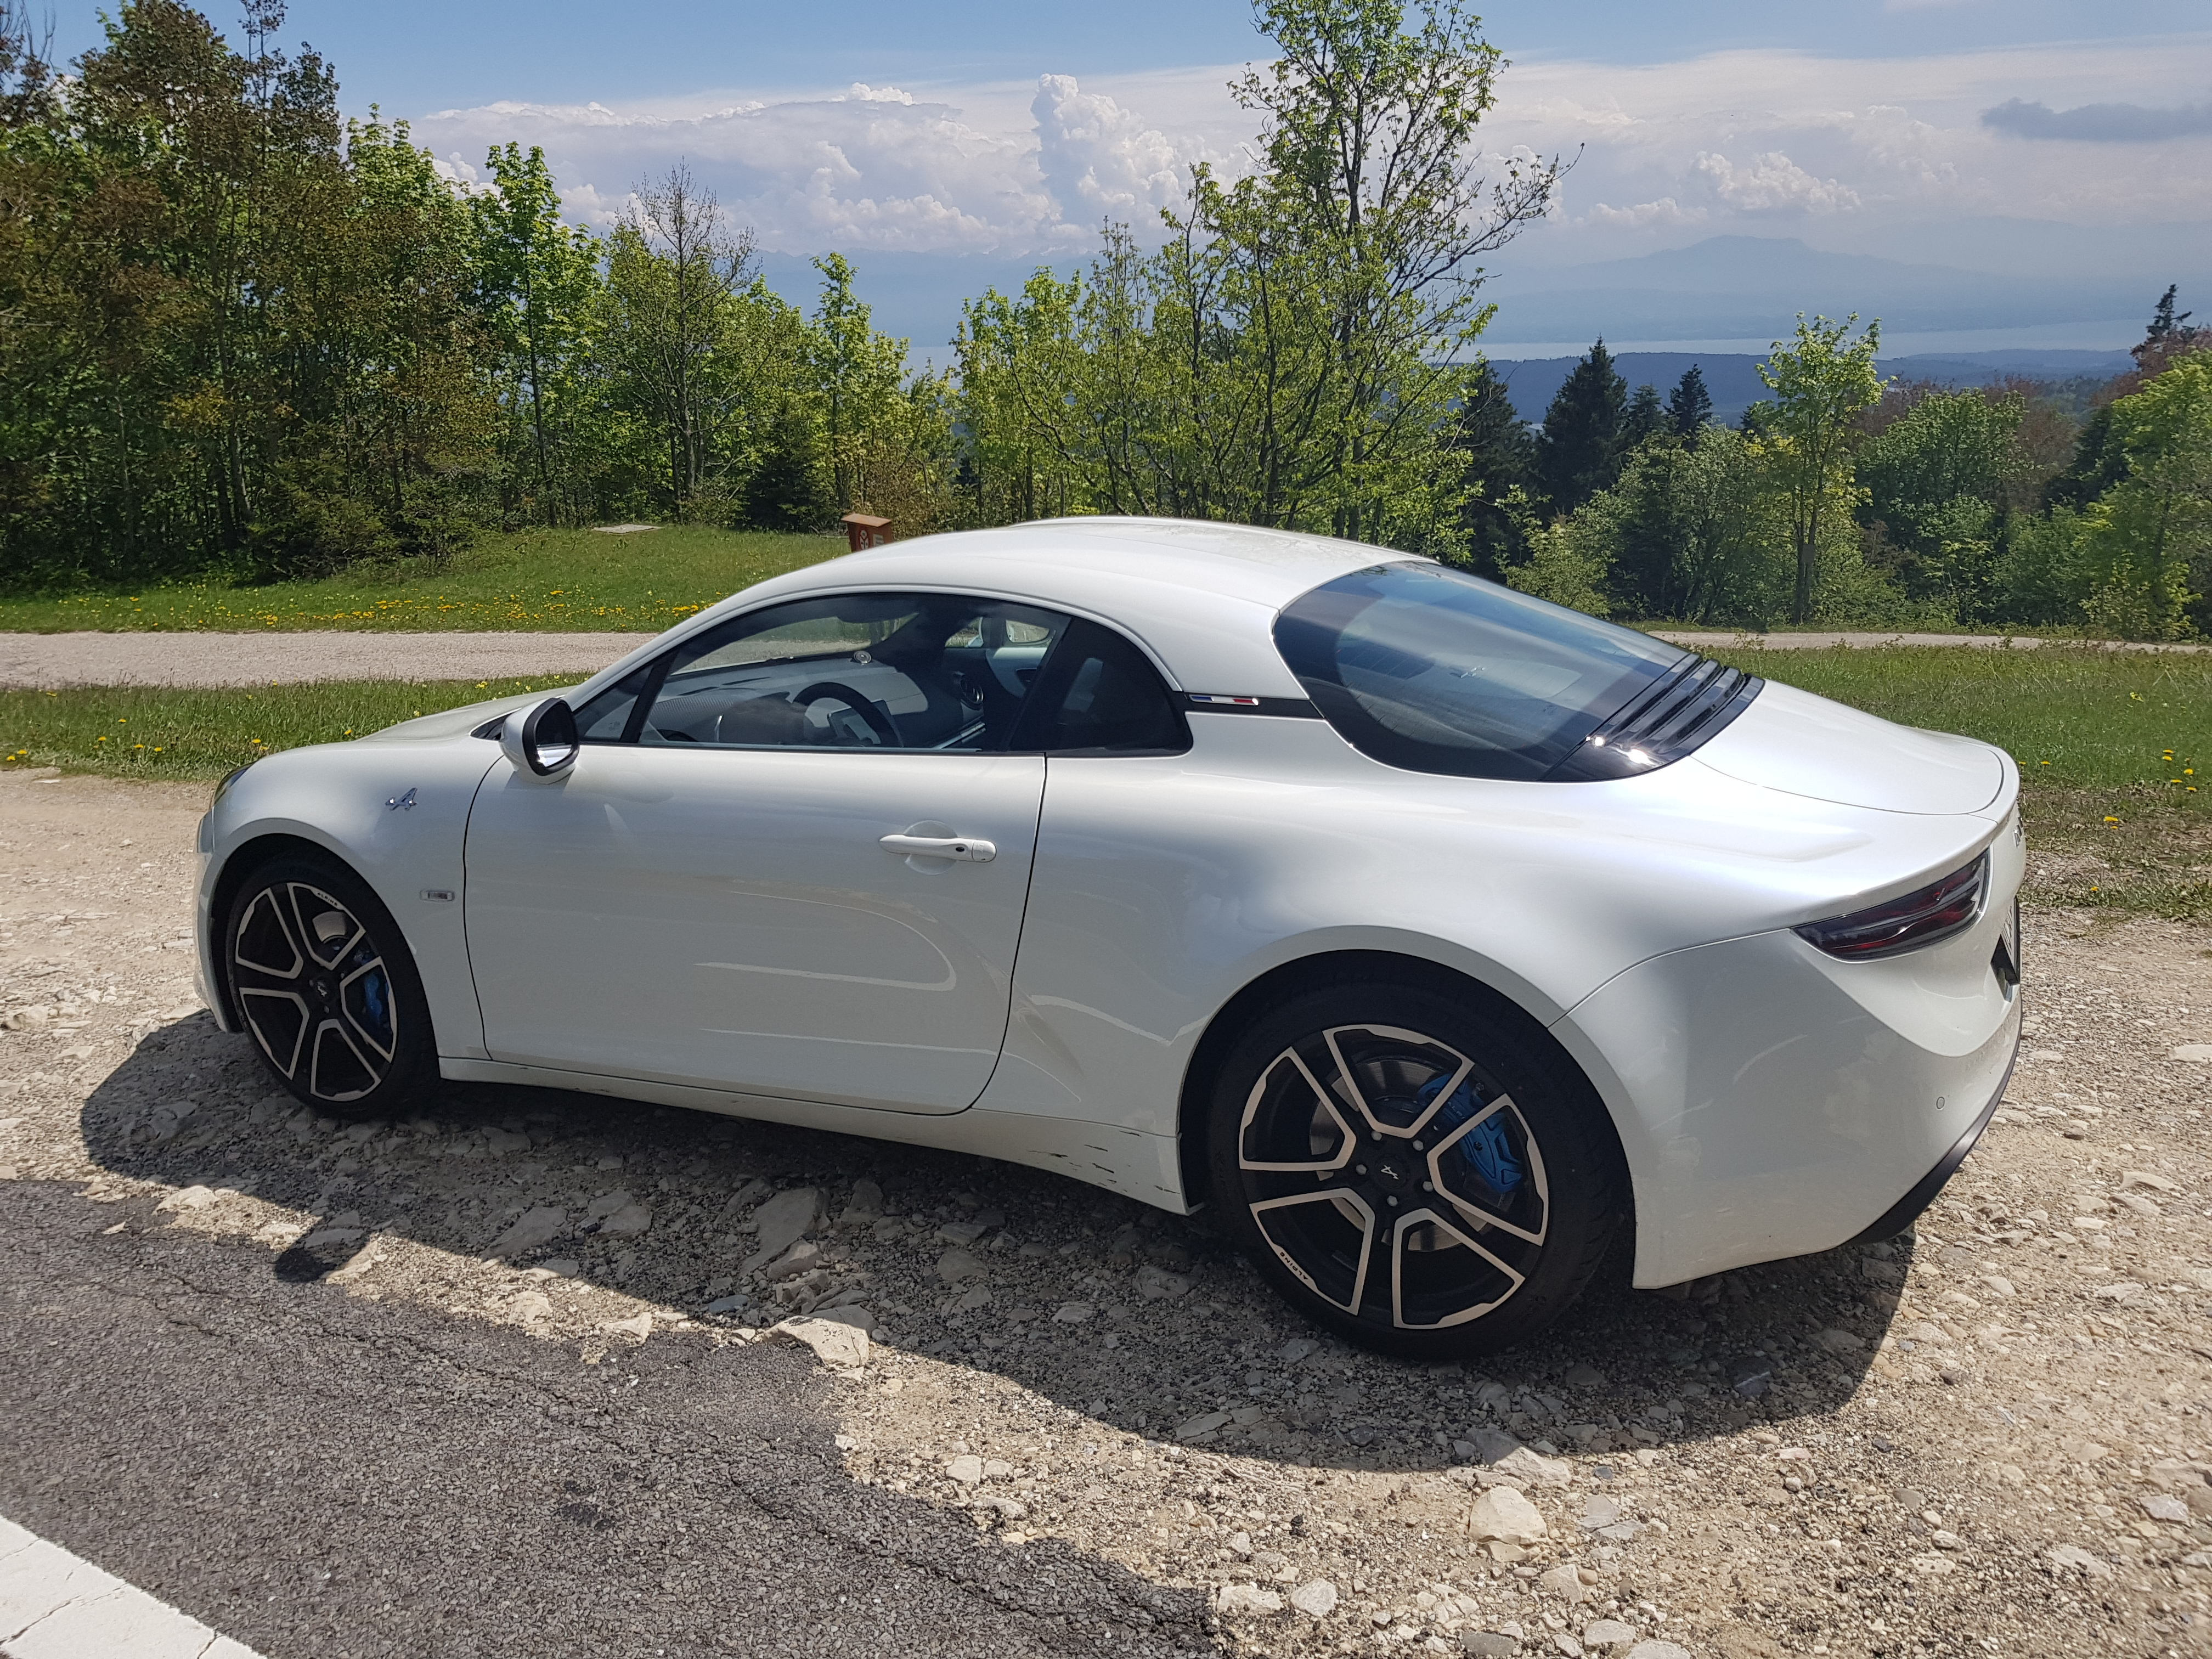 2017 - [Alpine] A110 [AS1] 1526855324-2018-05-20-14-34-01